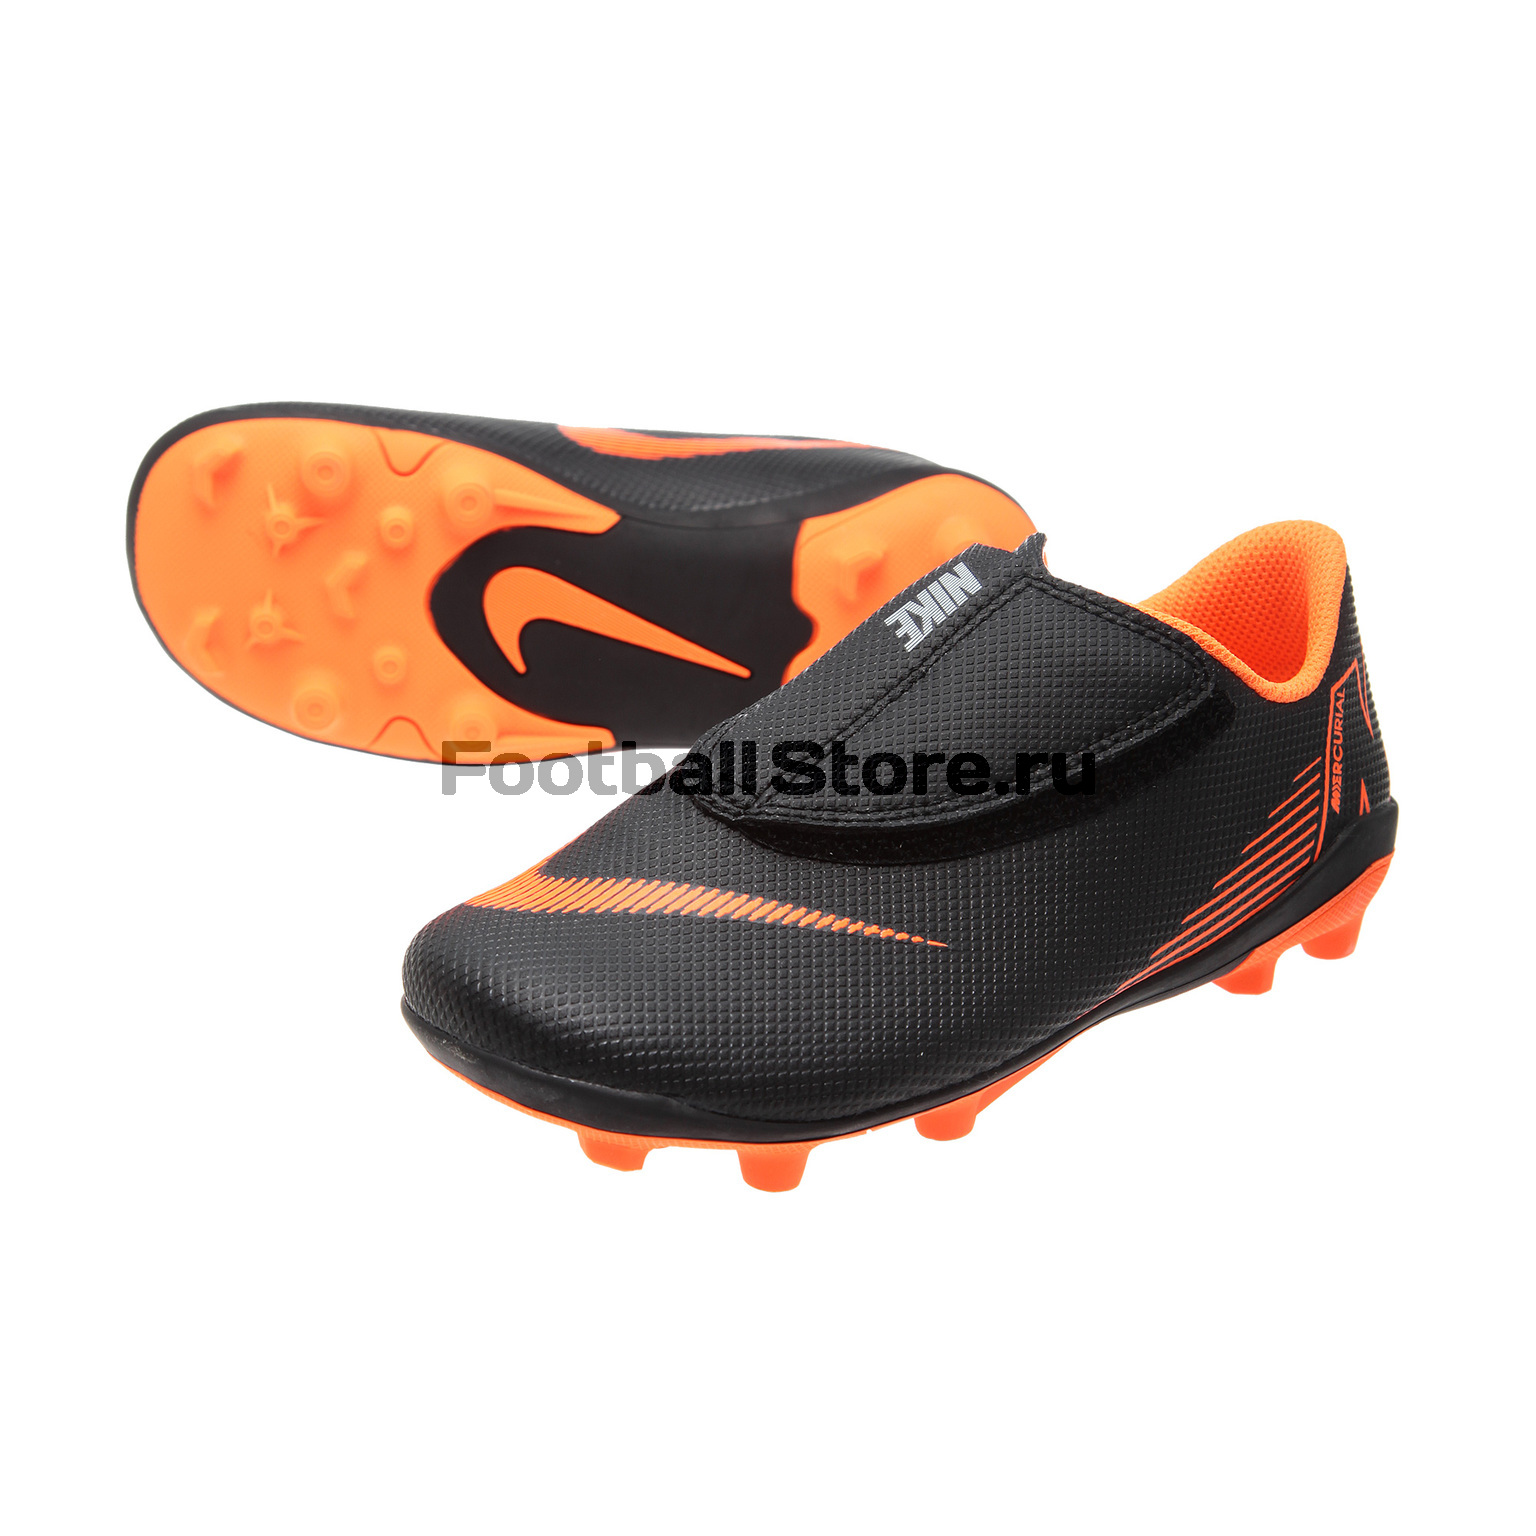 Бутсы детские Nike Vapor 12 Club PS FG/MG AH7351-081 бутсы nike шиповки nike jr tiempox legend vi tf 819191 018